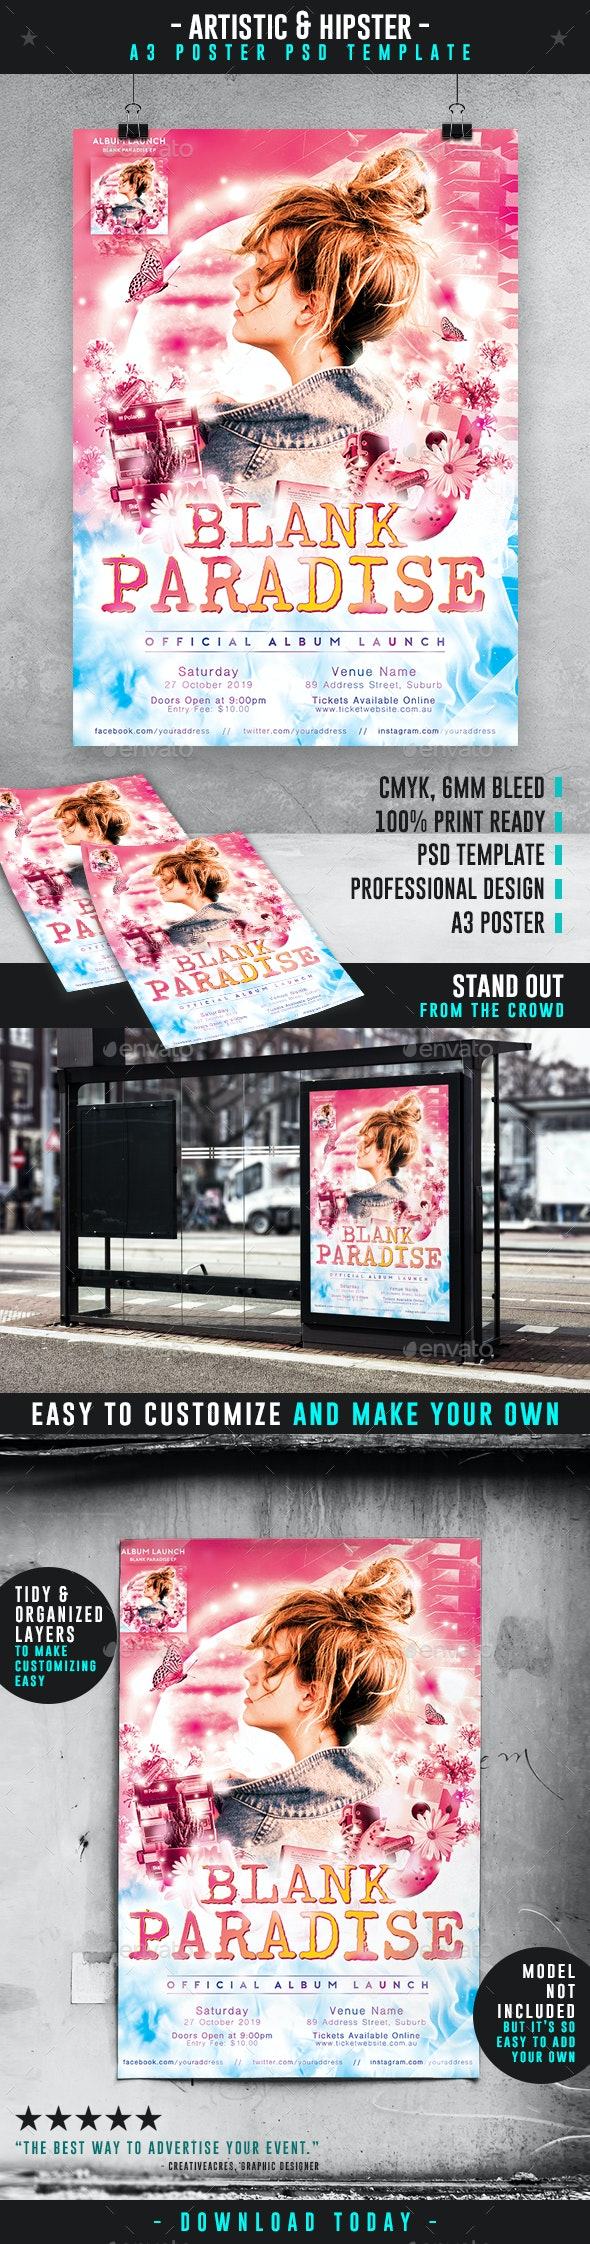 Bright Album Launch Event A3 Poster Template - Events Flyers